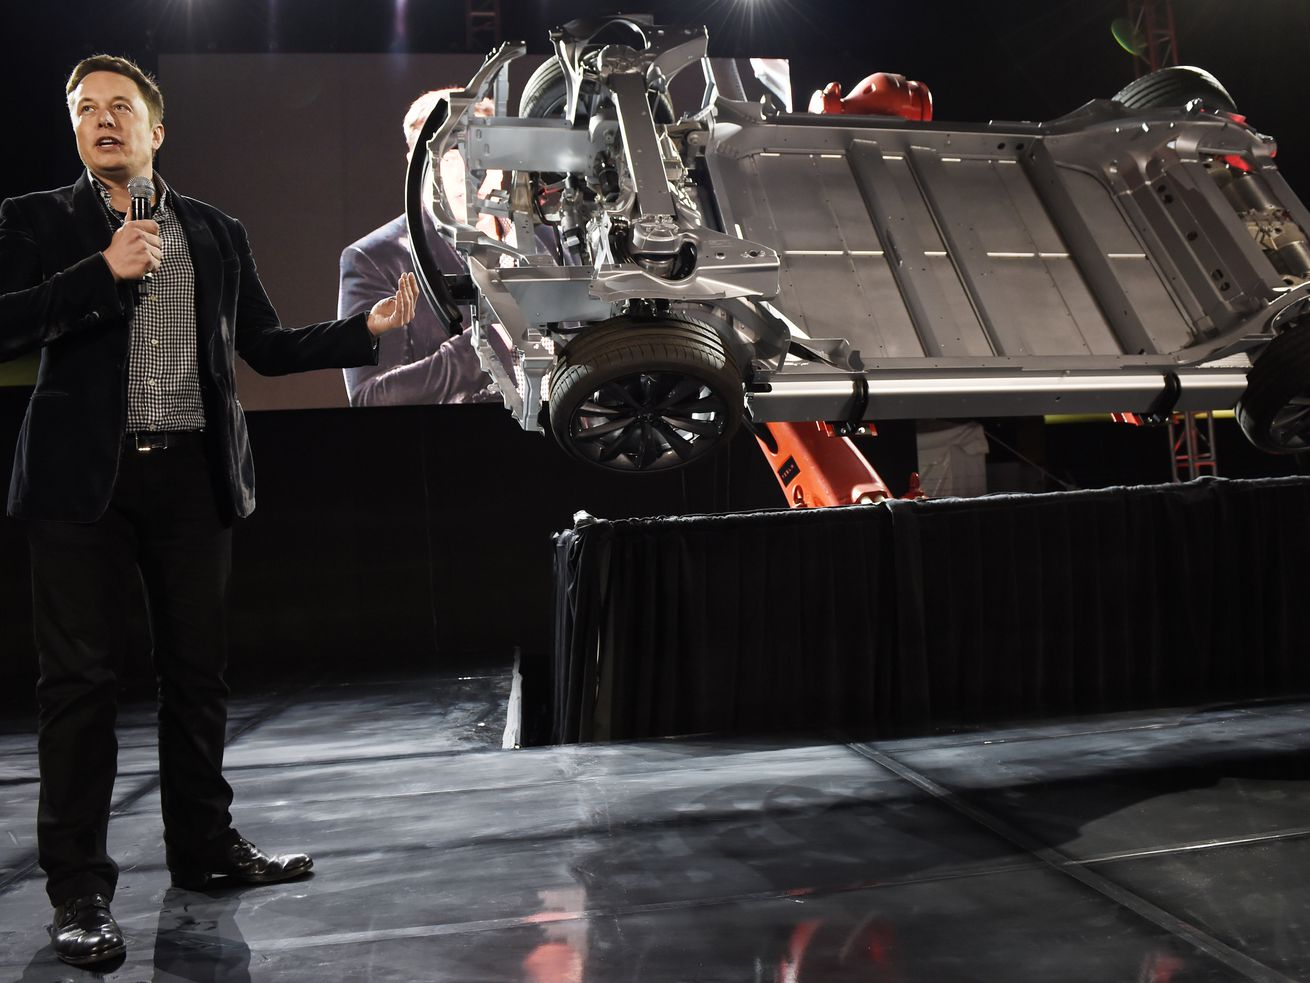 Elon Musk at an event in Hawthorne, California in October 2014.